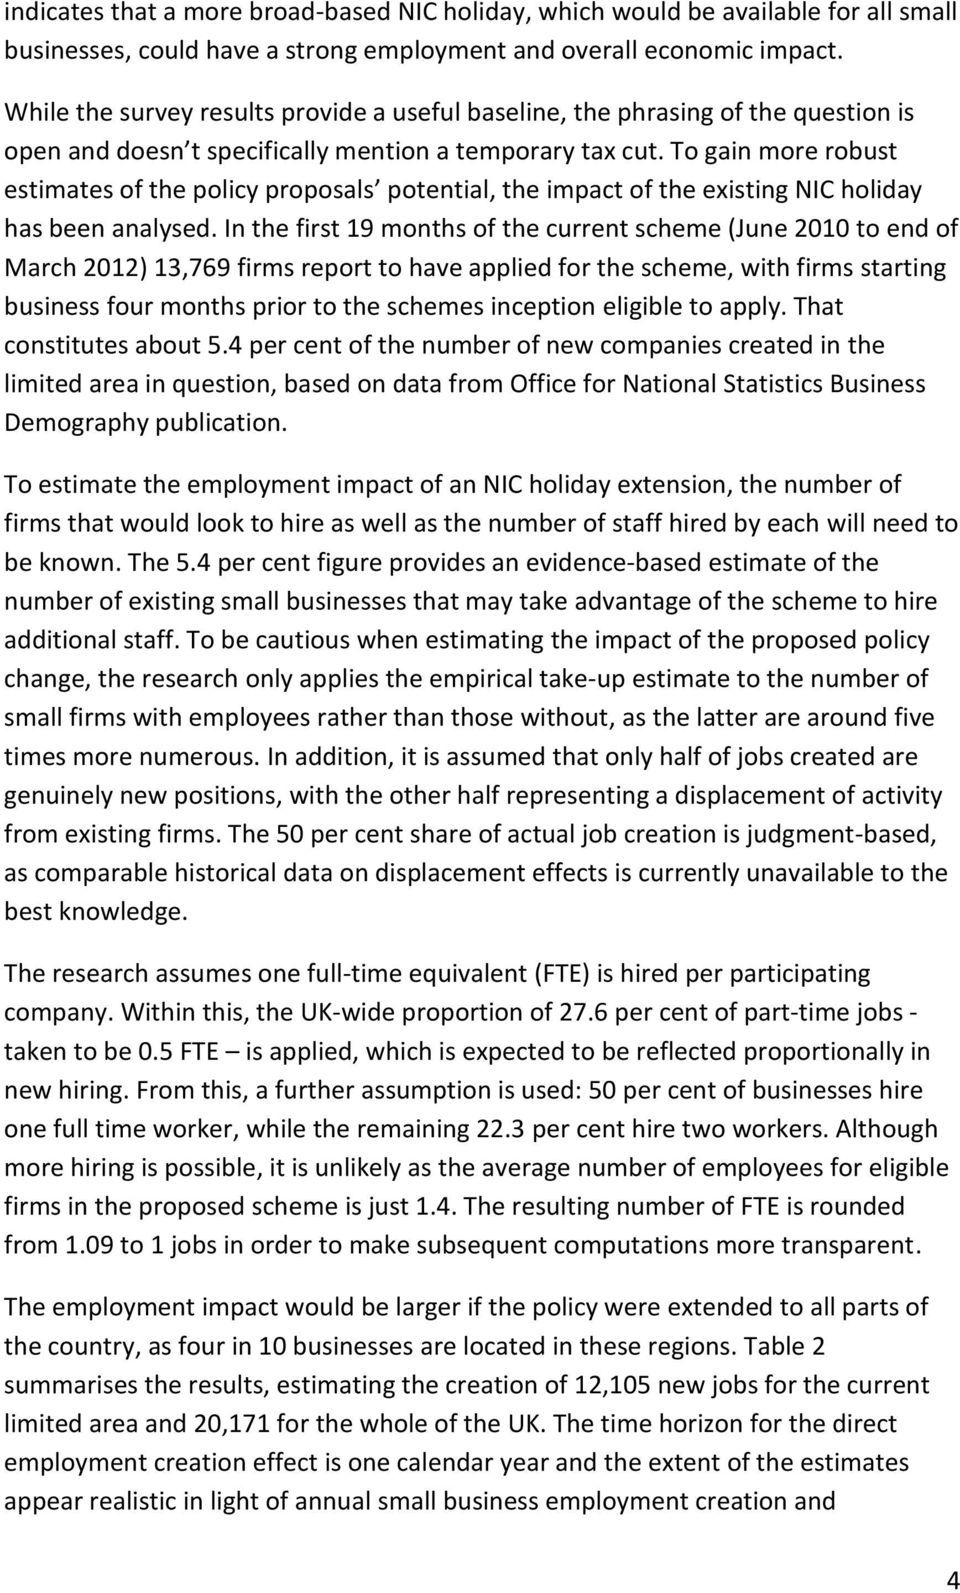 To gain more robust estimates of the policy proposals potential, the impact of the existing NIC holiday has been analysed.